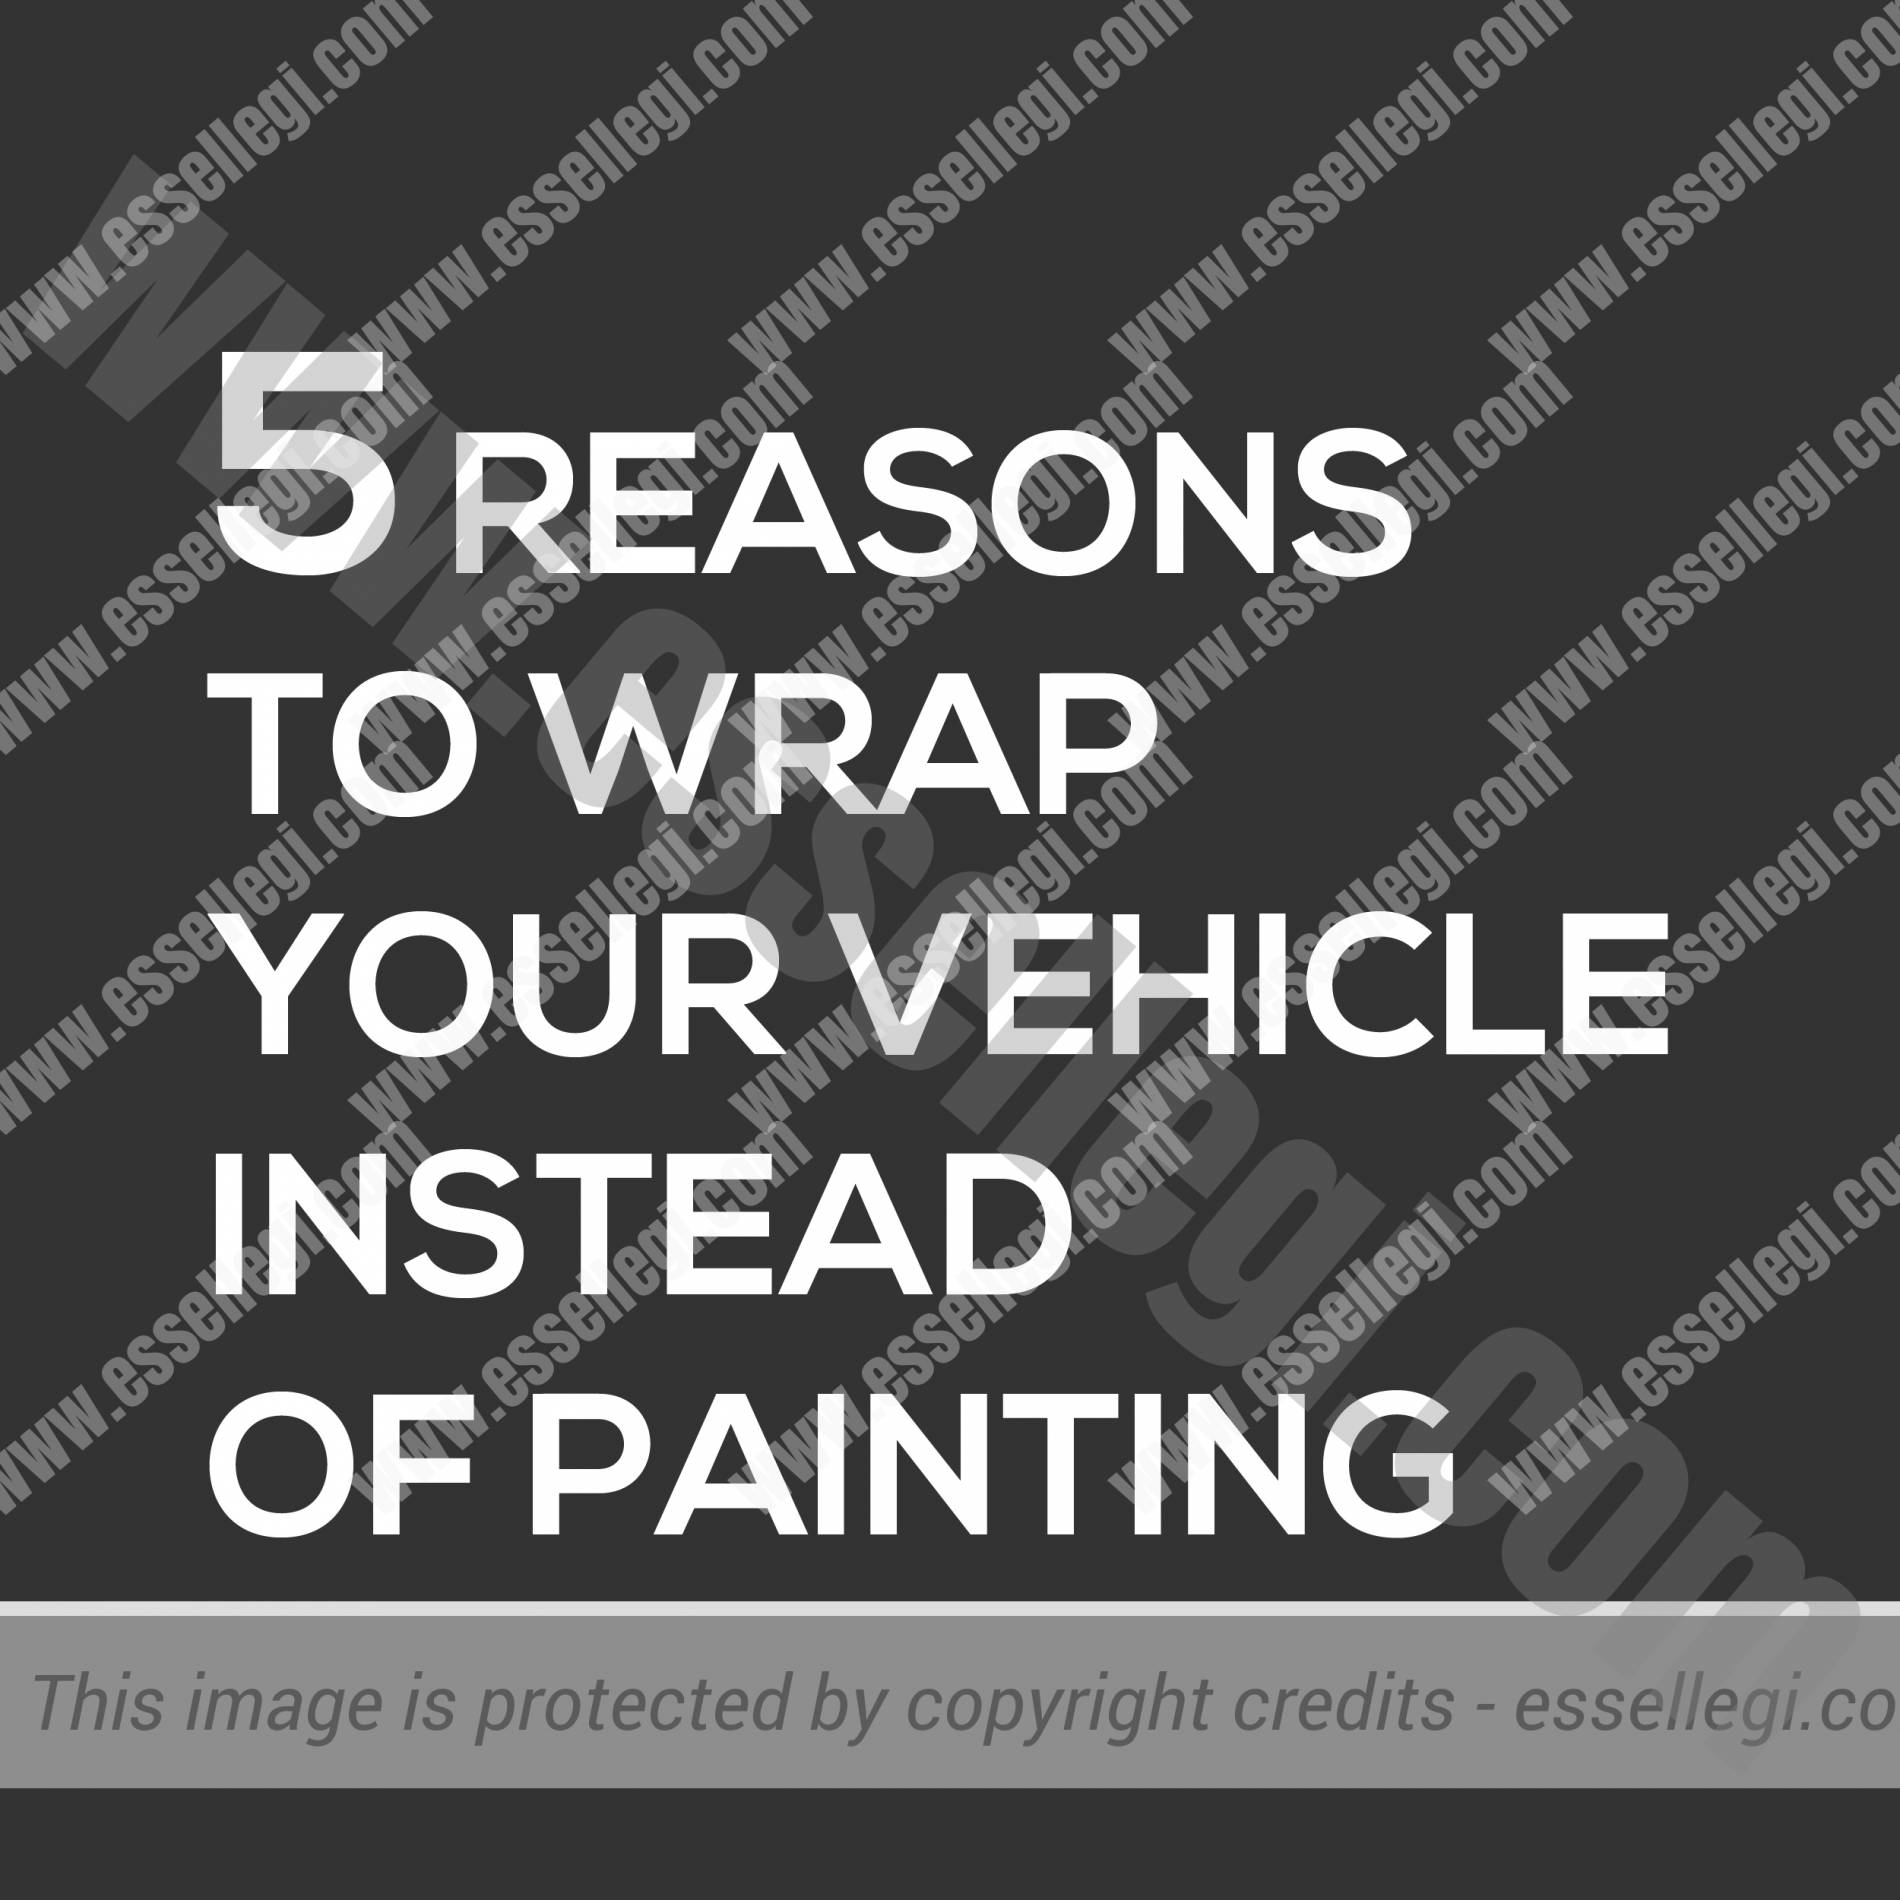 5 REASONS TO WRAP YOUR VEHICLE INSTEAD OF PAINTING